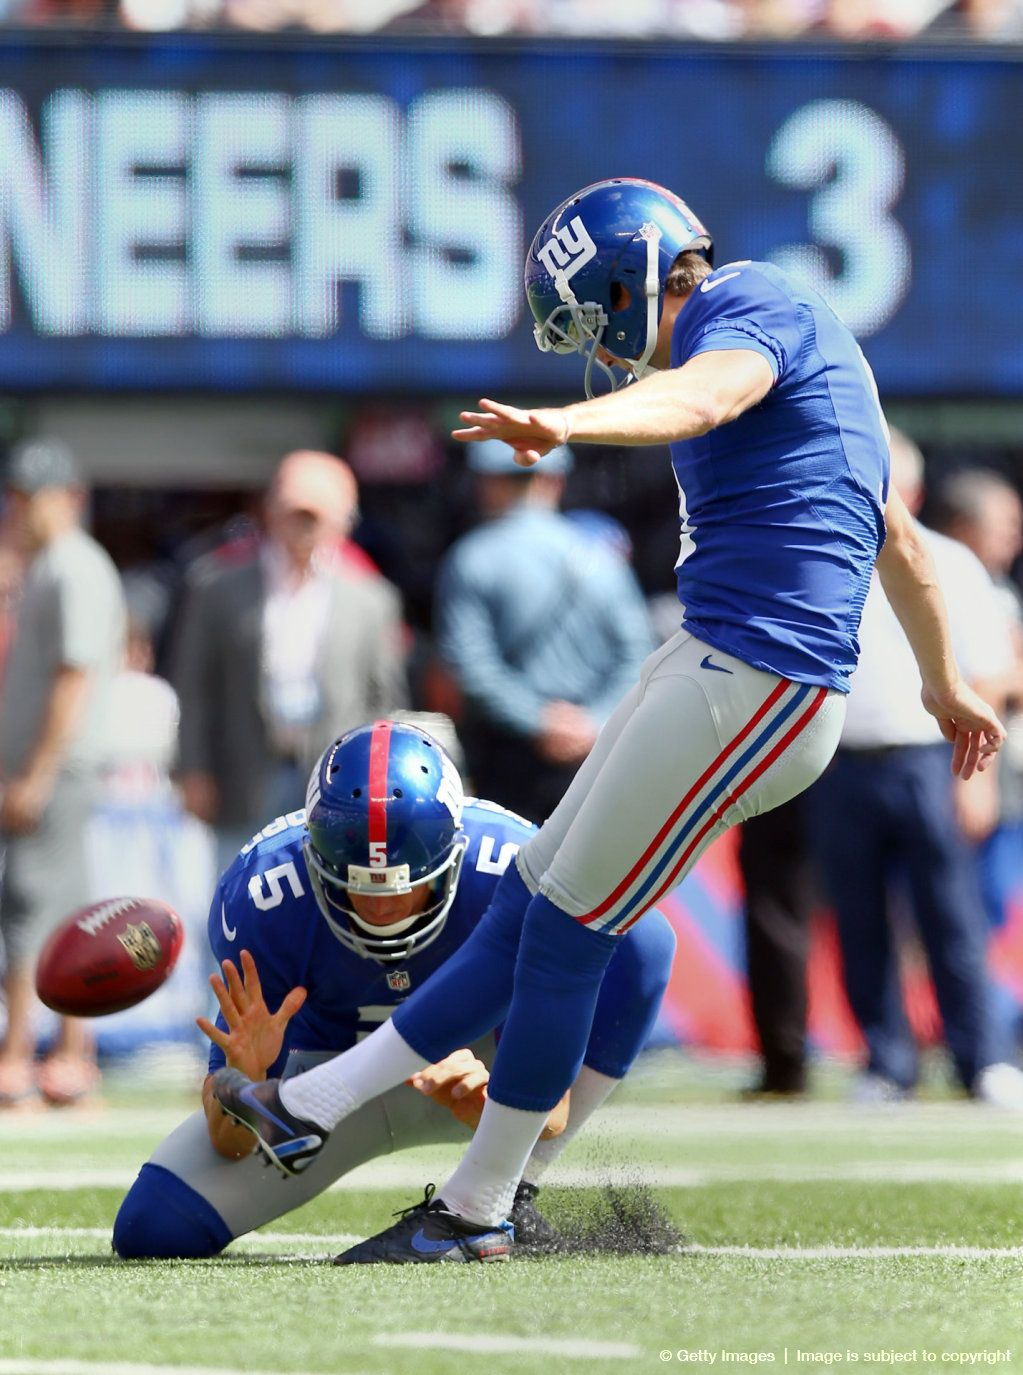 Perfect Day for Lawrence Tynes! 4 for 4 on field goals and